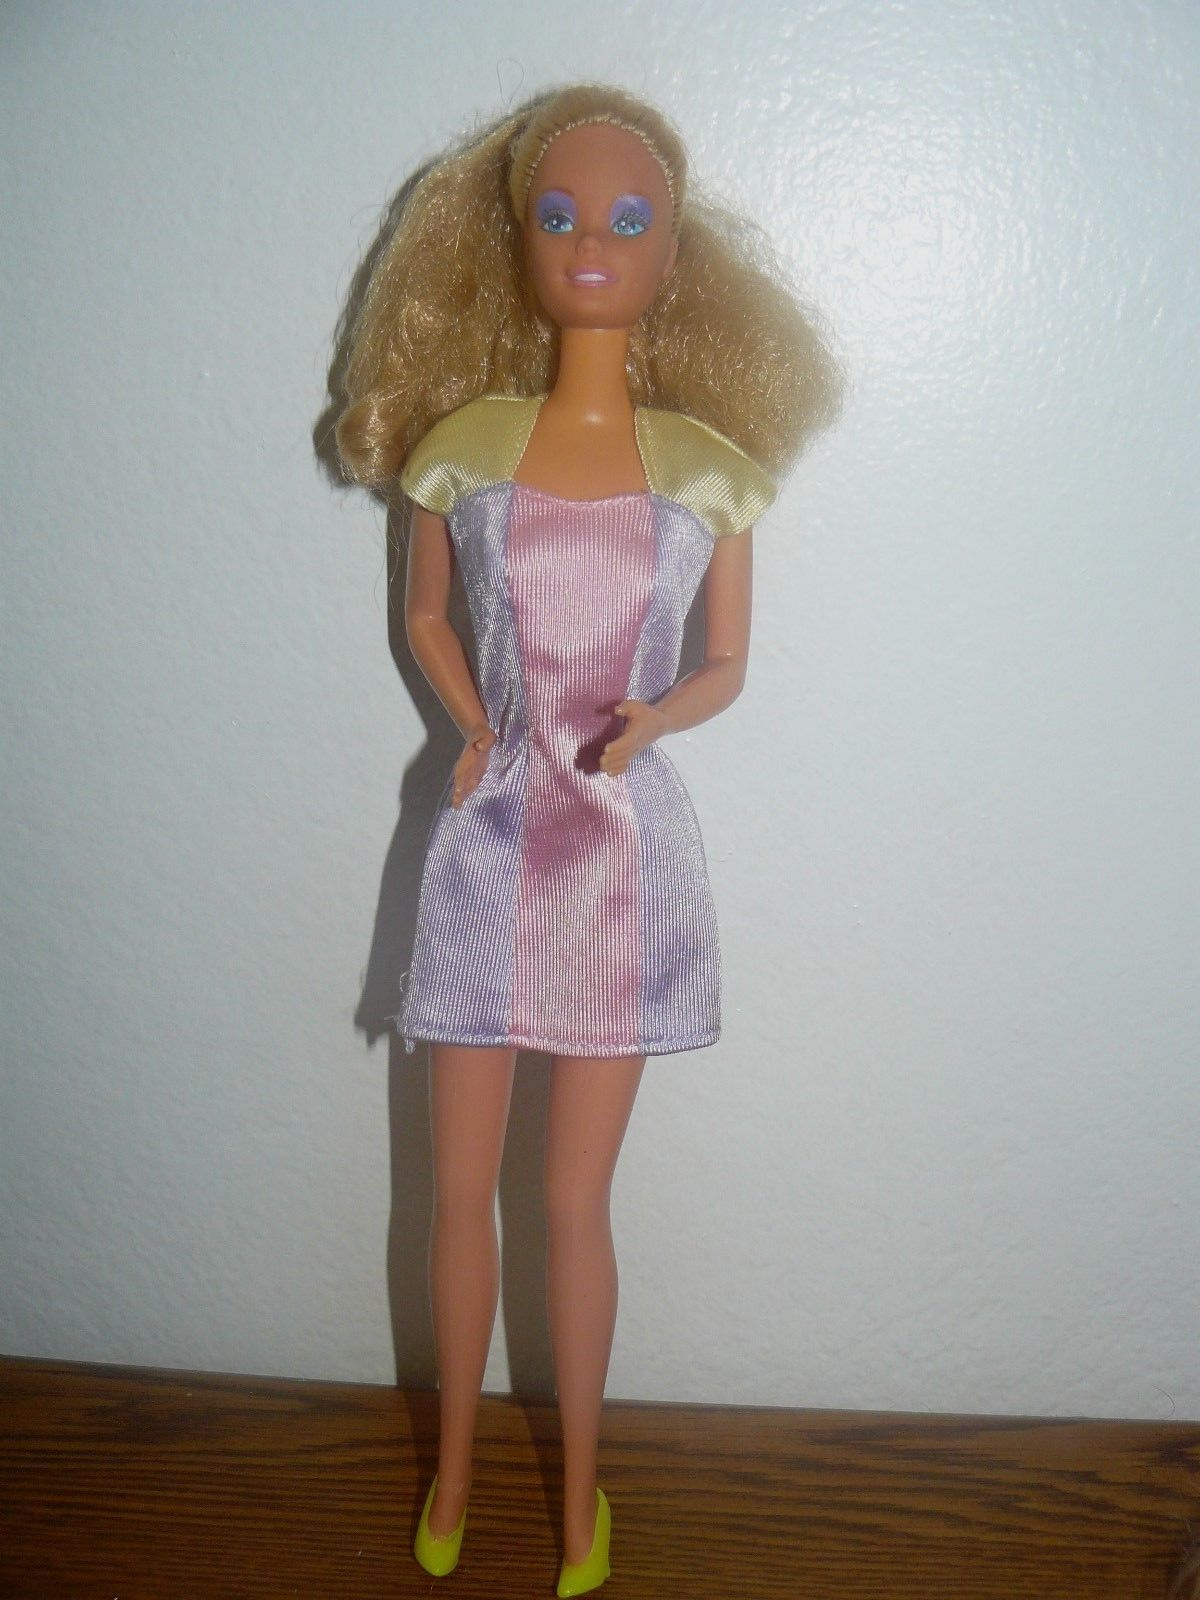 32b1a773ed5e Mattel 1970 s Twist  N Turn Blond Barbie and 50 similar items. 57